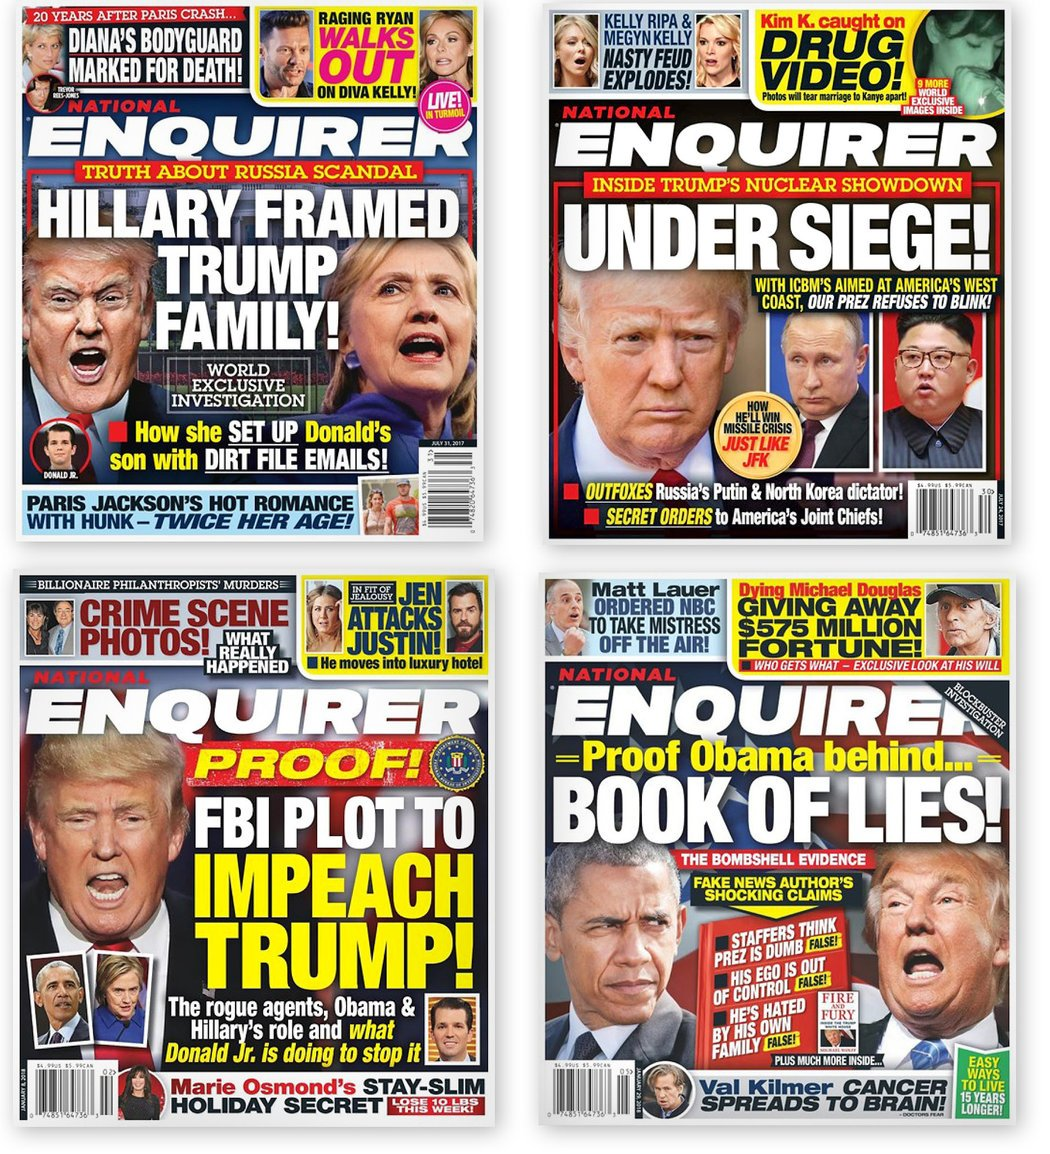 djt national enquirer covers